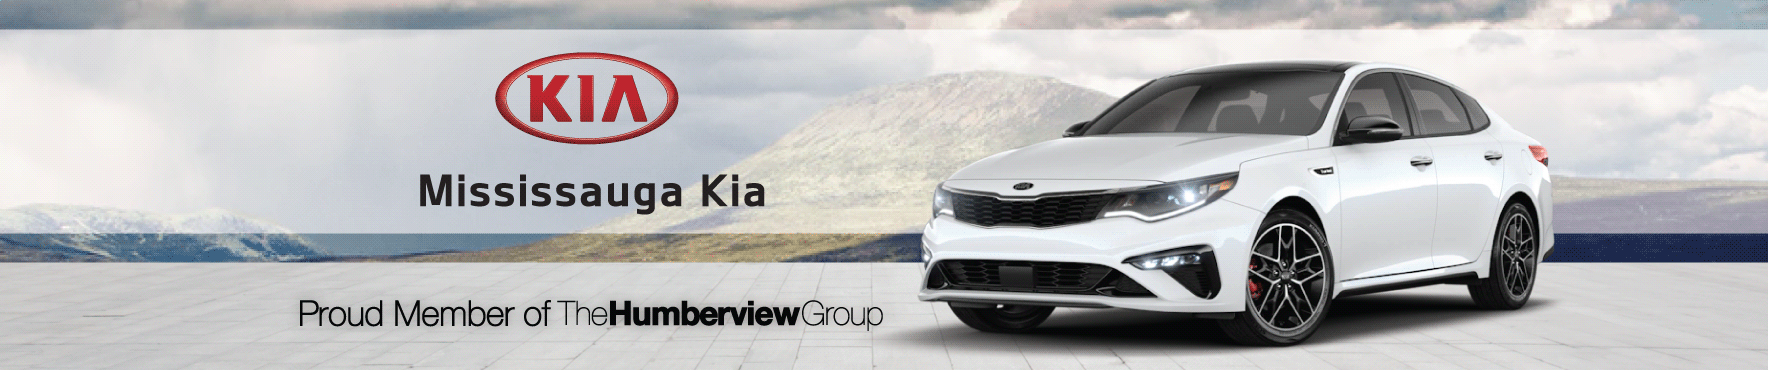 Mississauga Kia - About Us